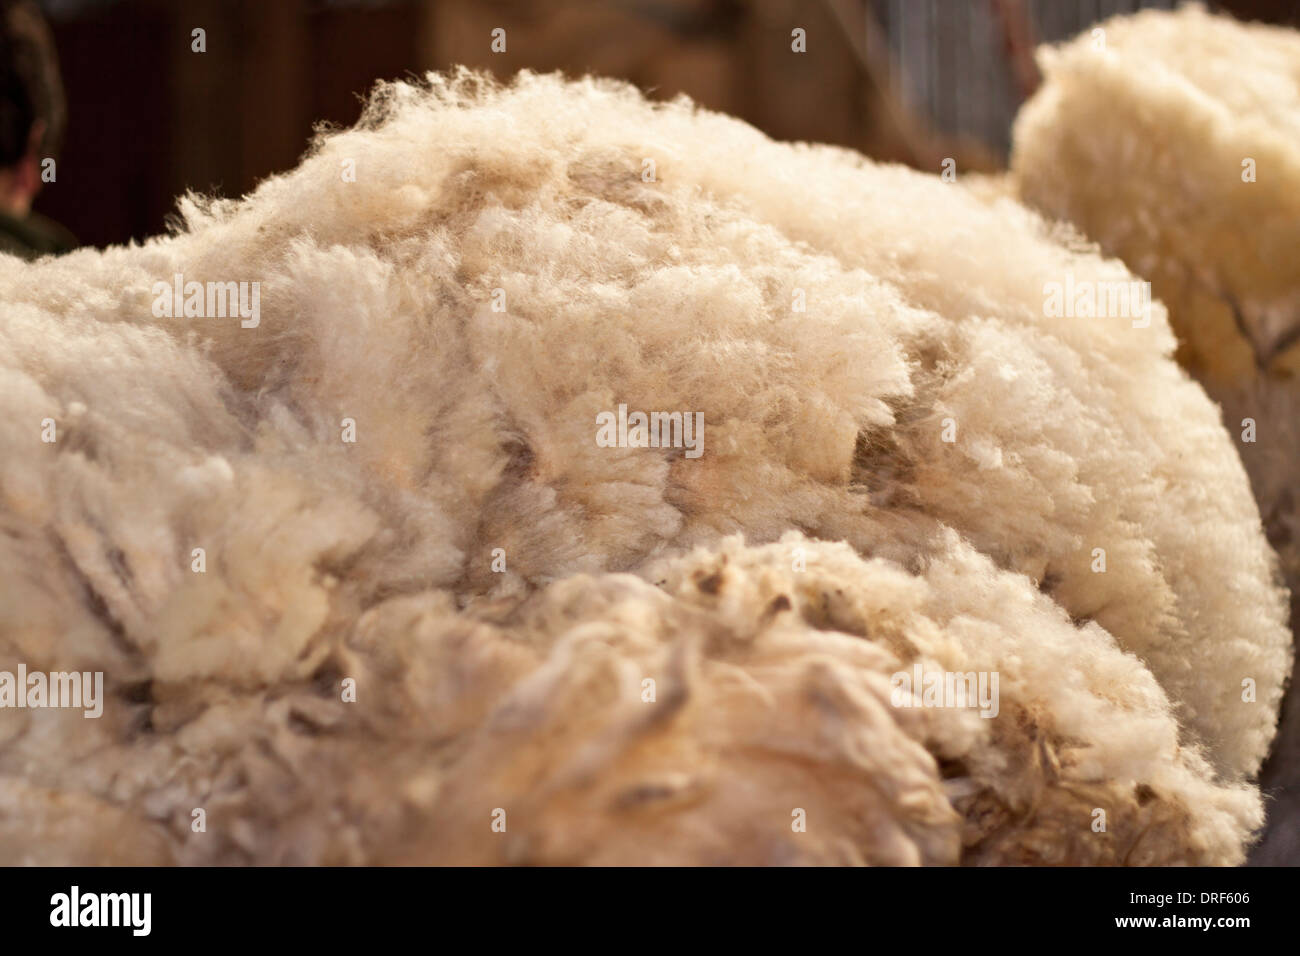 Detail of sheared wool. - Stock Image